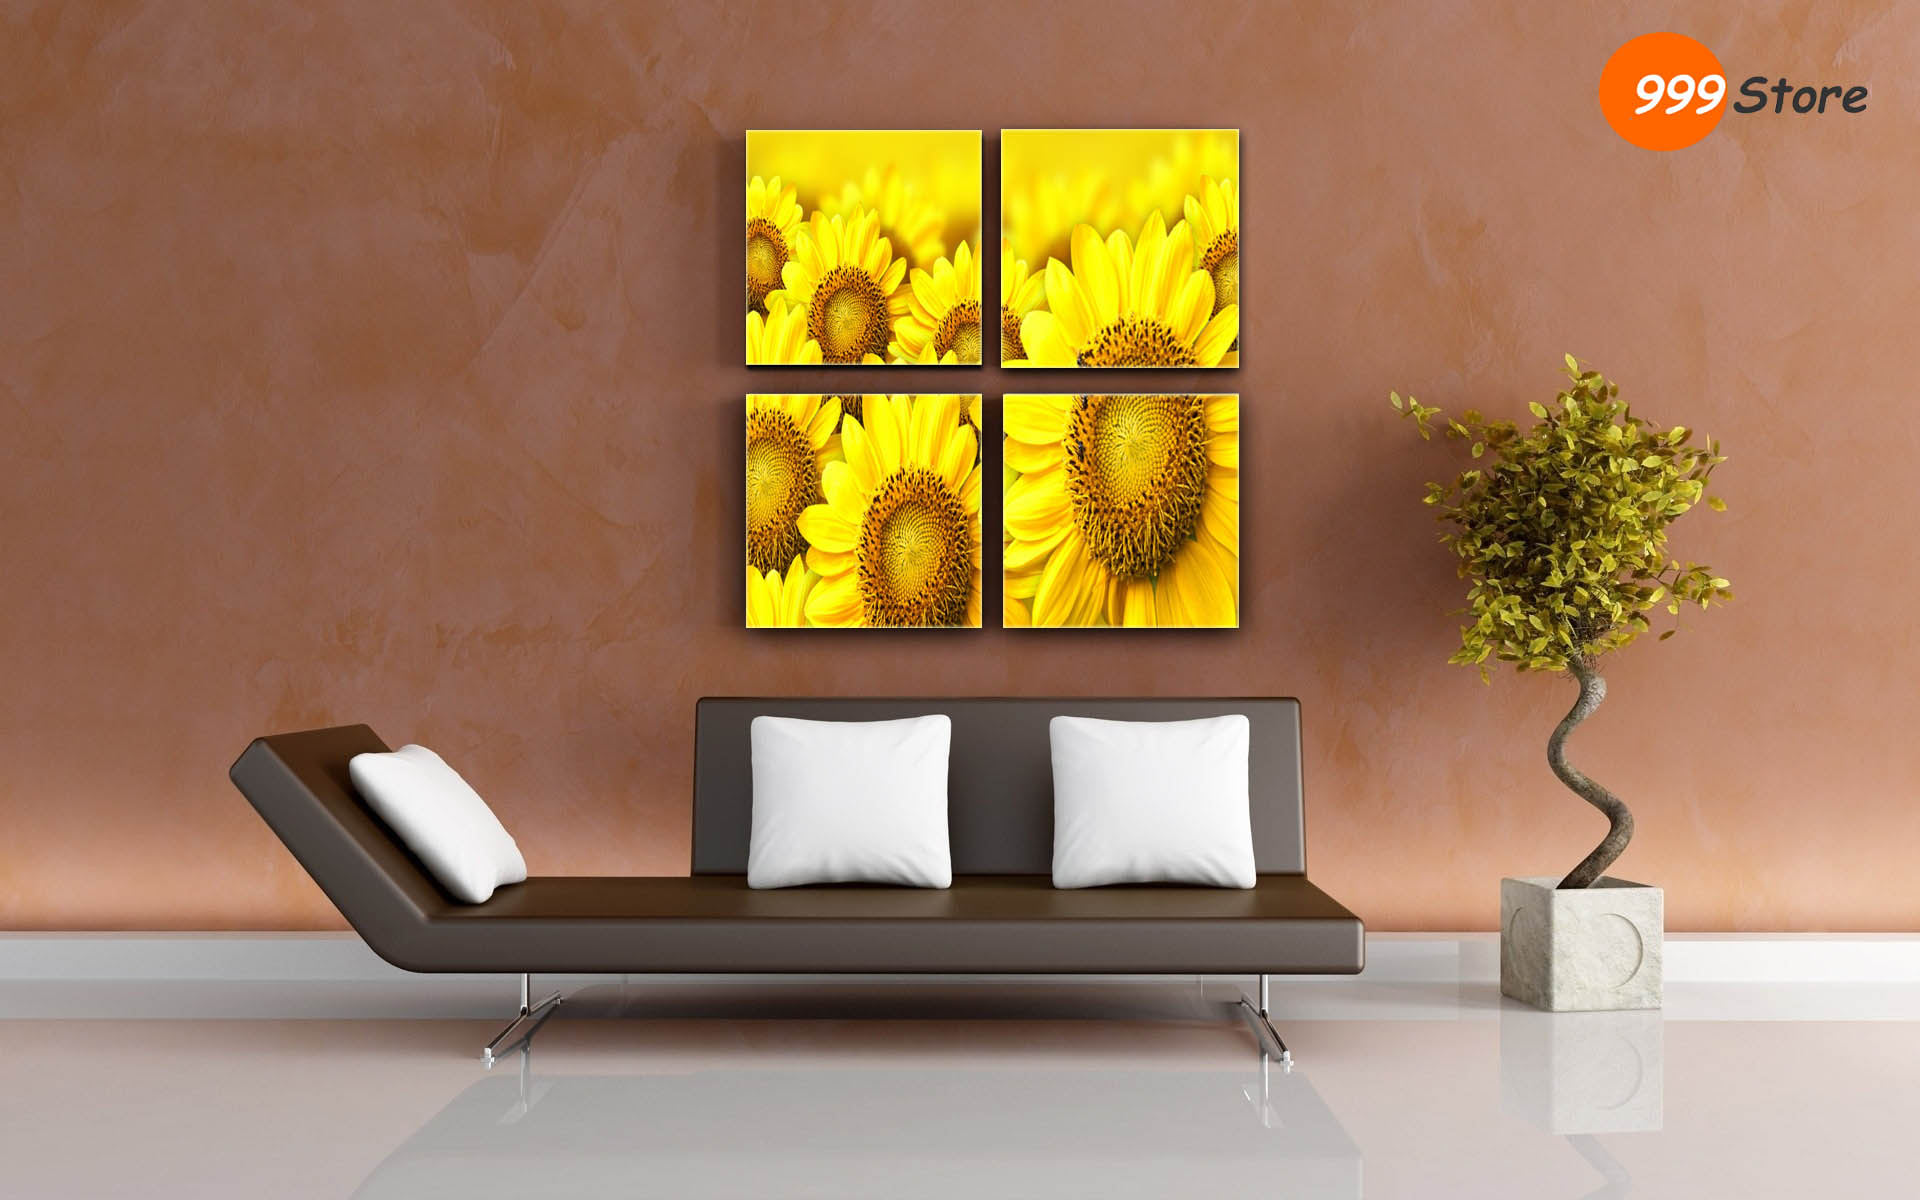 Buy Multiple Frames Living Room Sun Flowers Canvas Printed Wall Art Painting 4 Fra Online